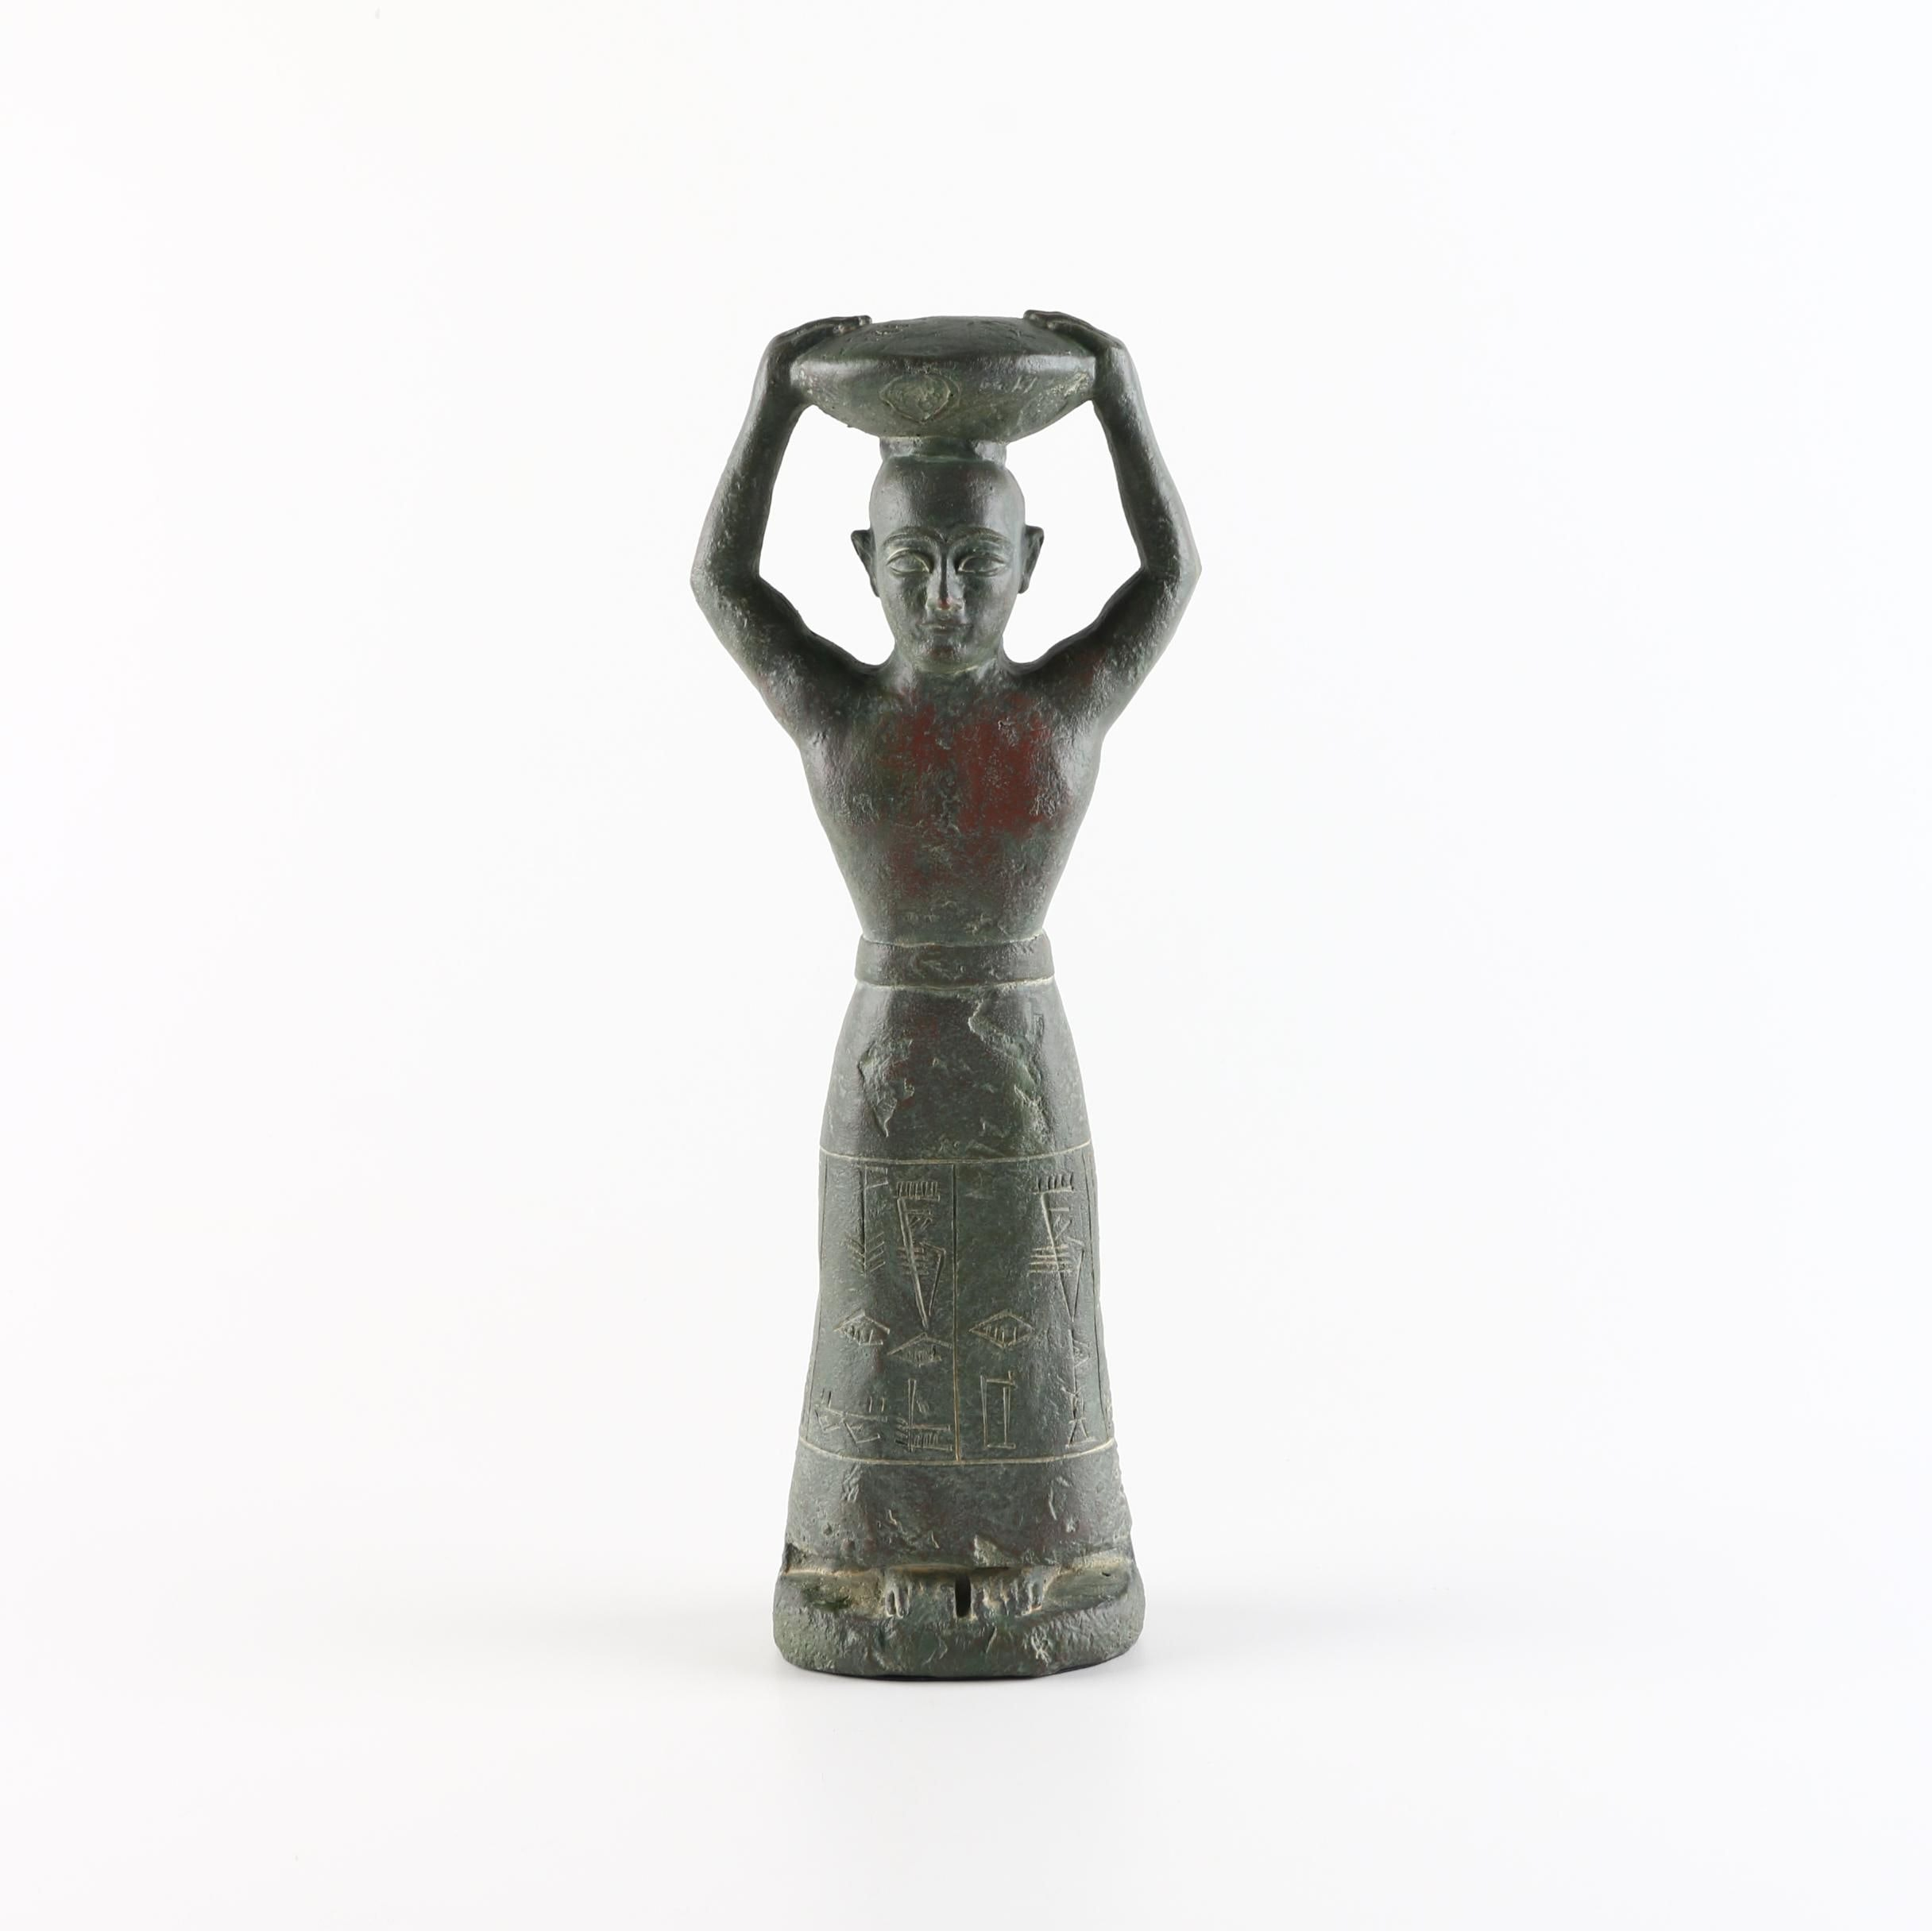 Reproduction Neo-Sumerian Foundation Figurine